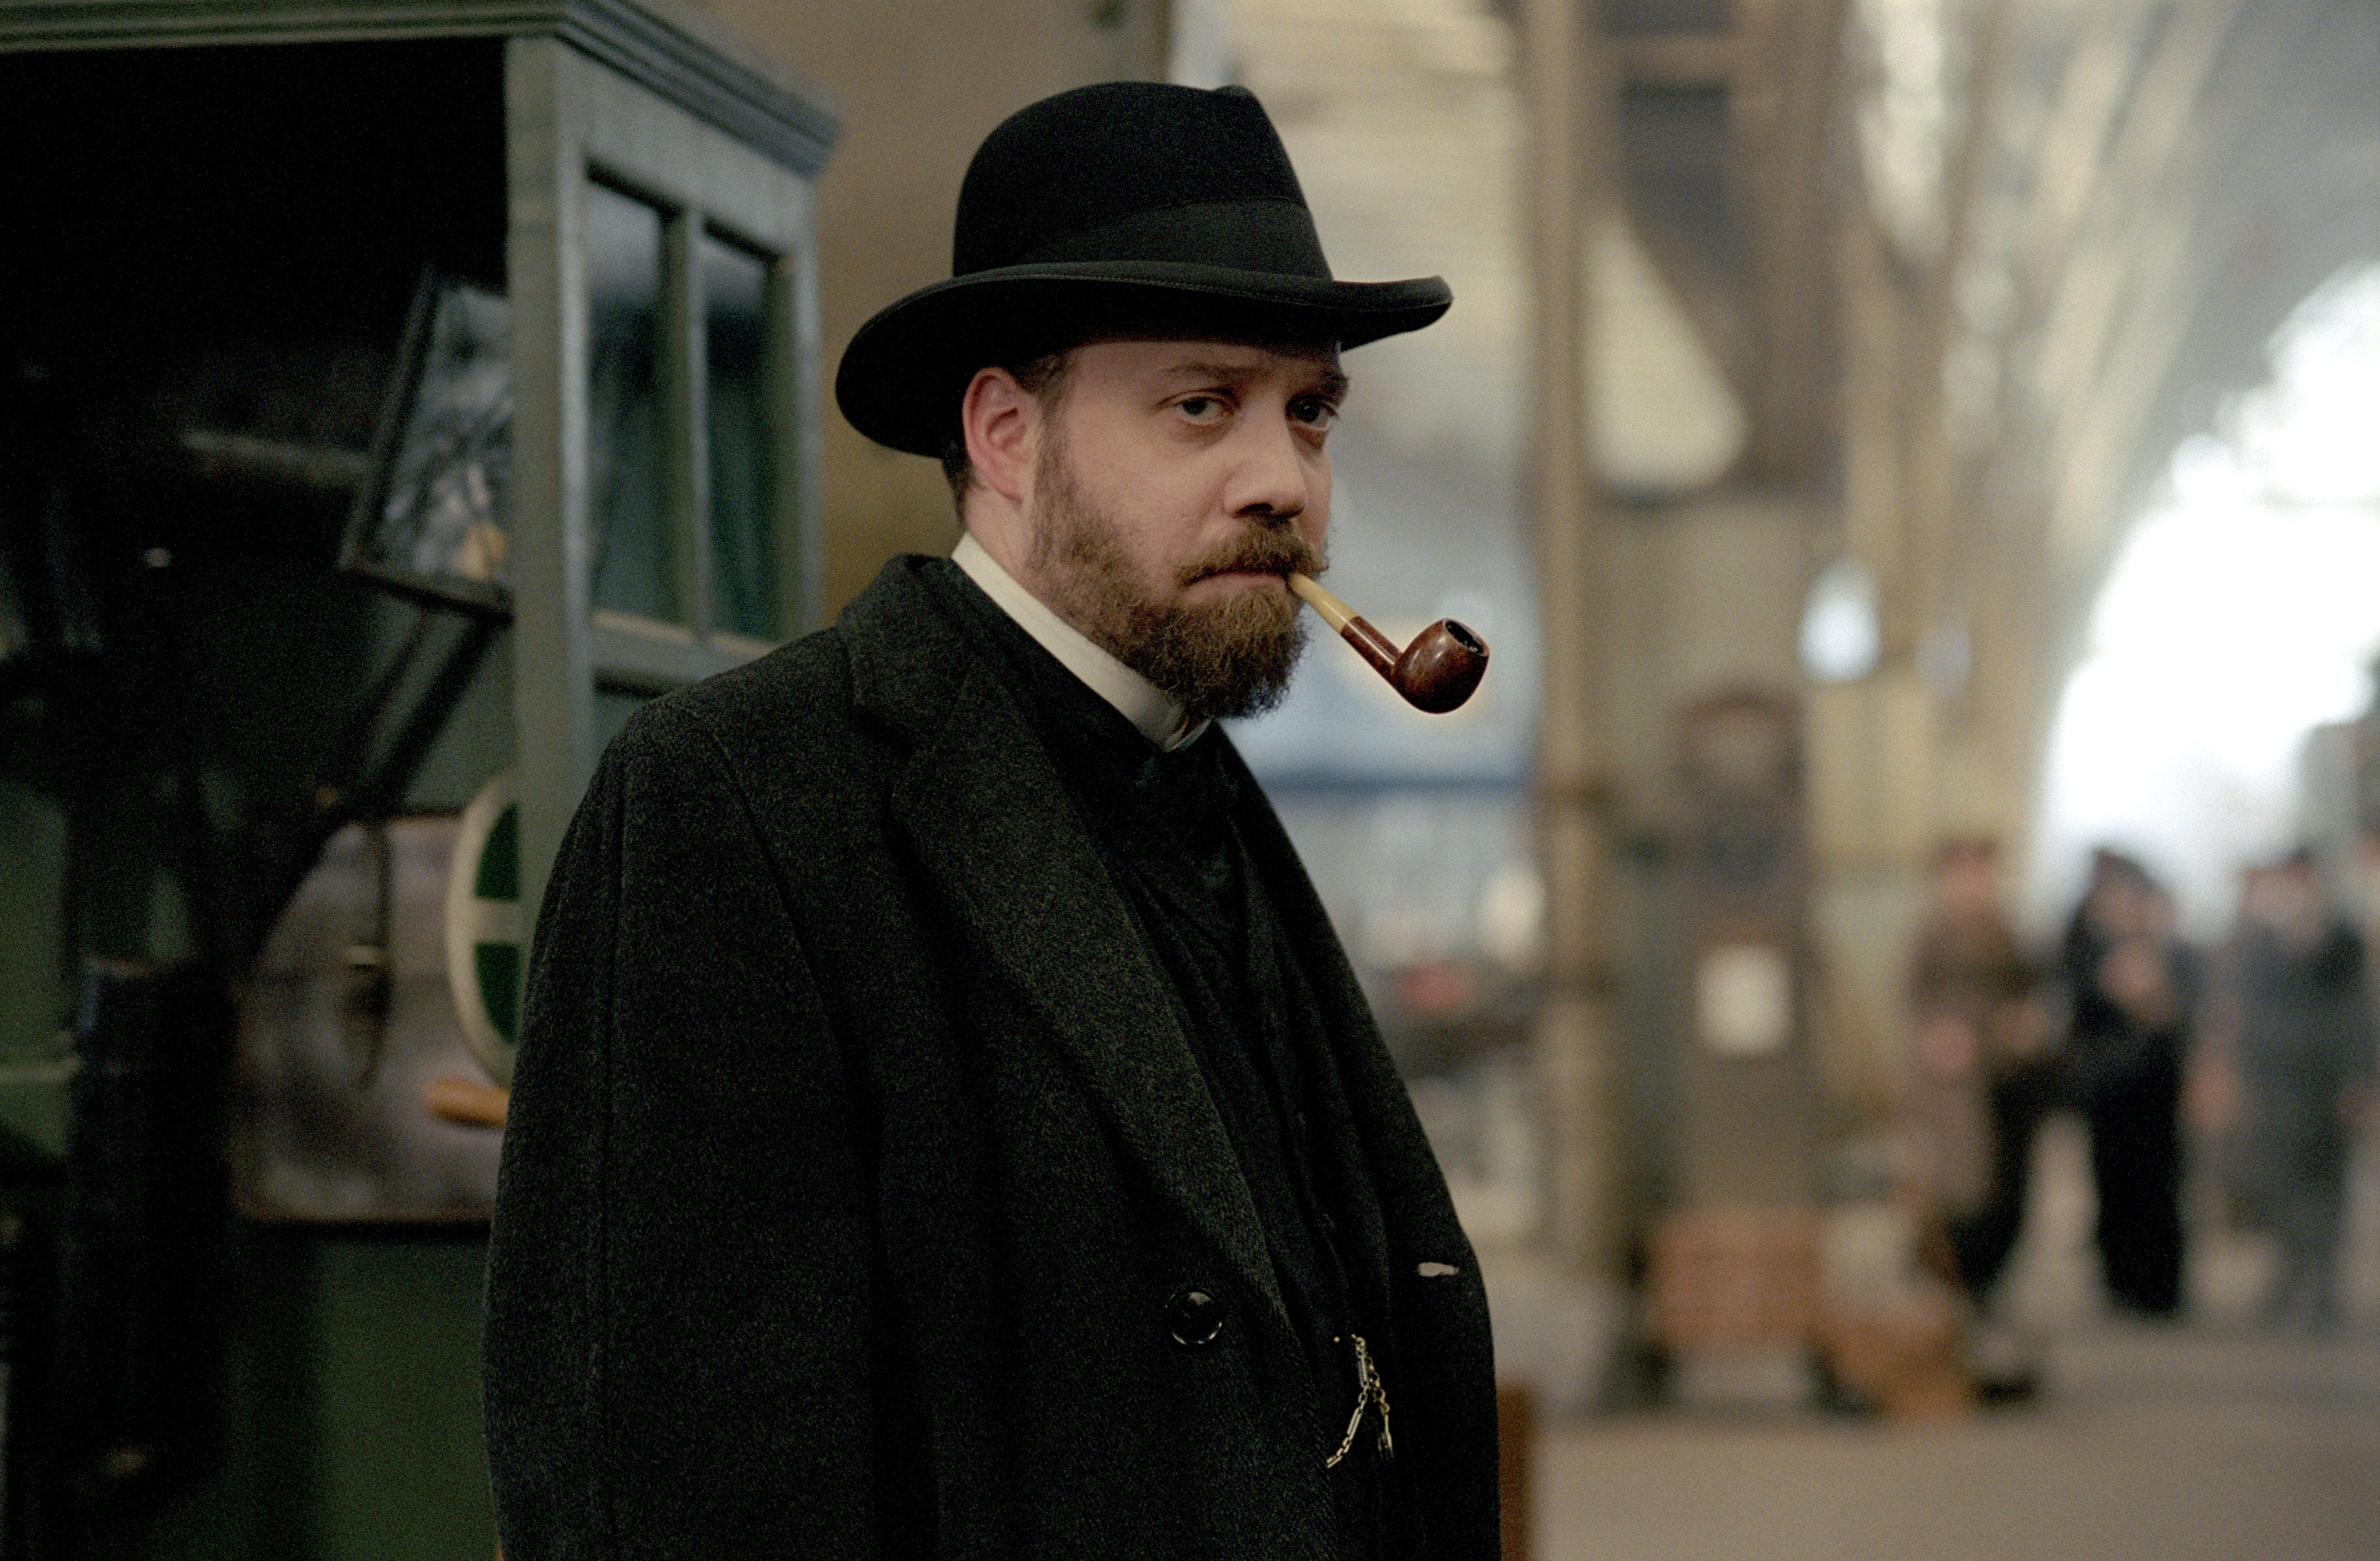 Paul Giamatti is surprise addition to Downton Abbey series 4 cast